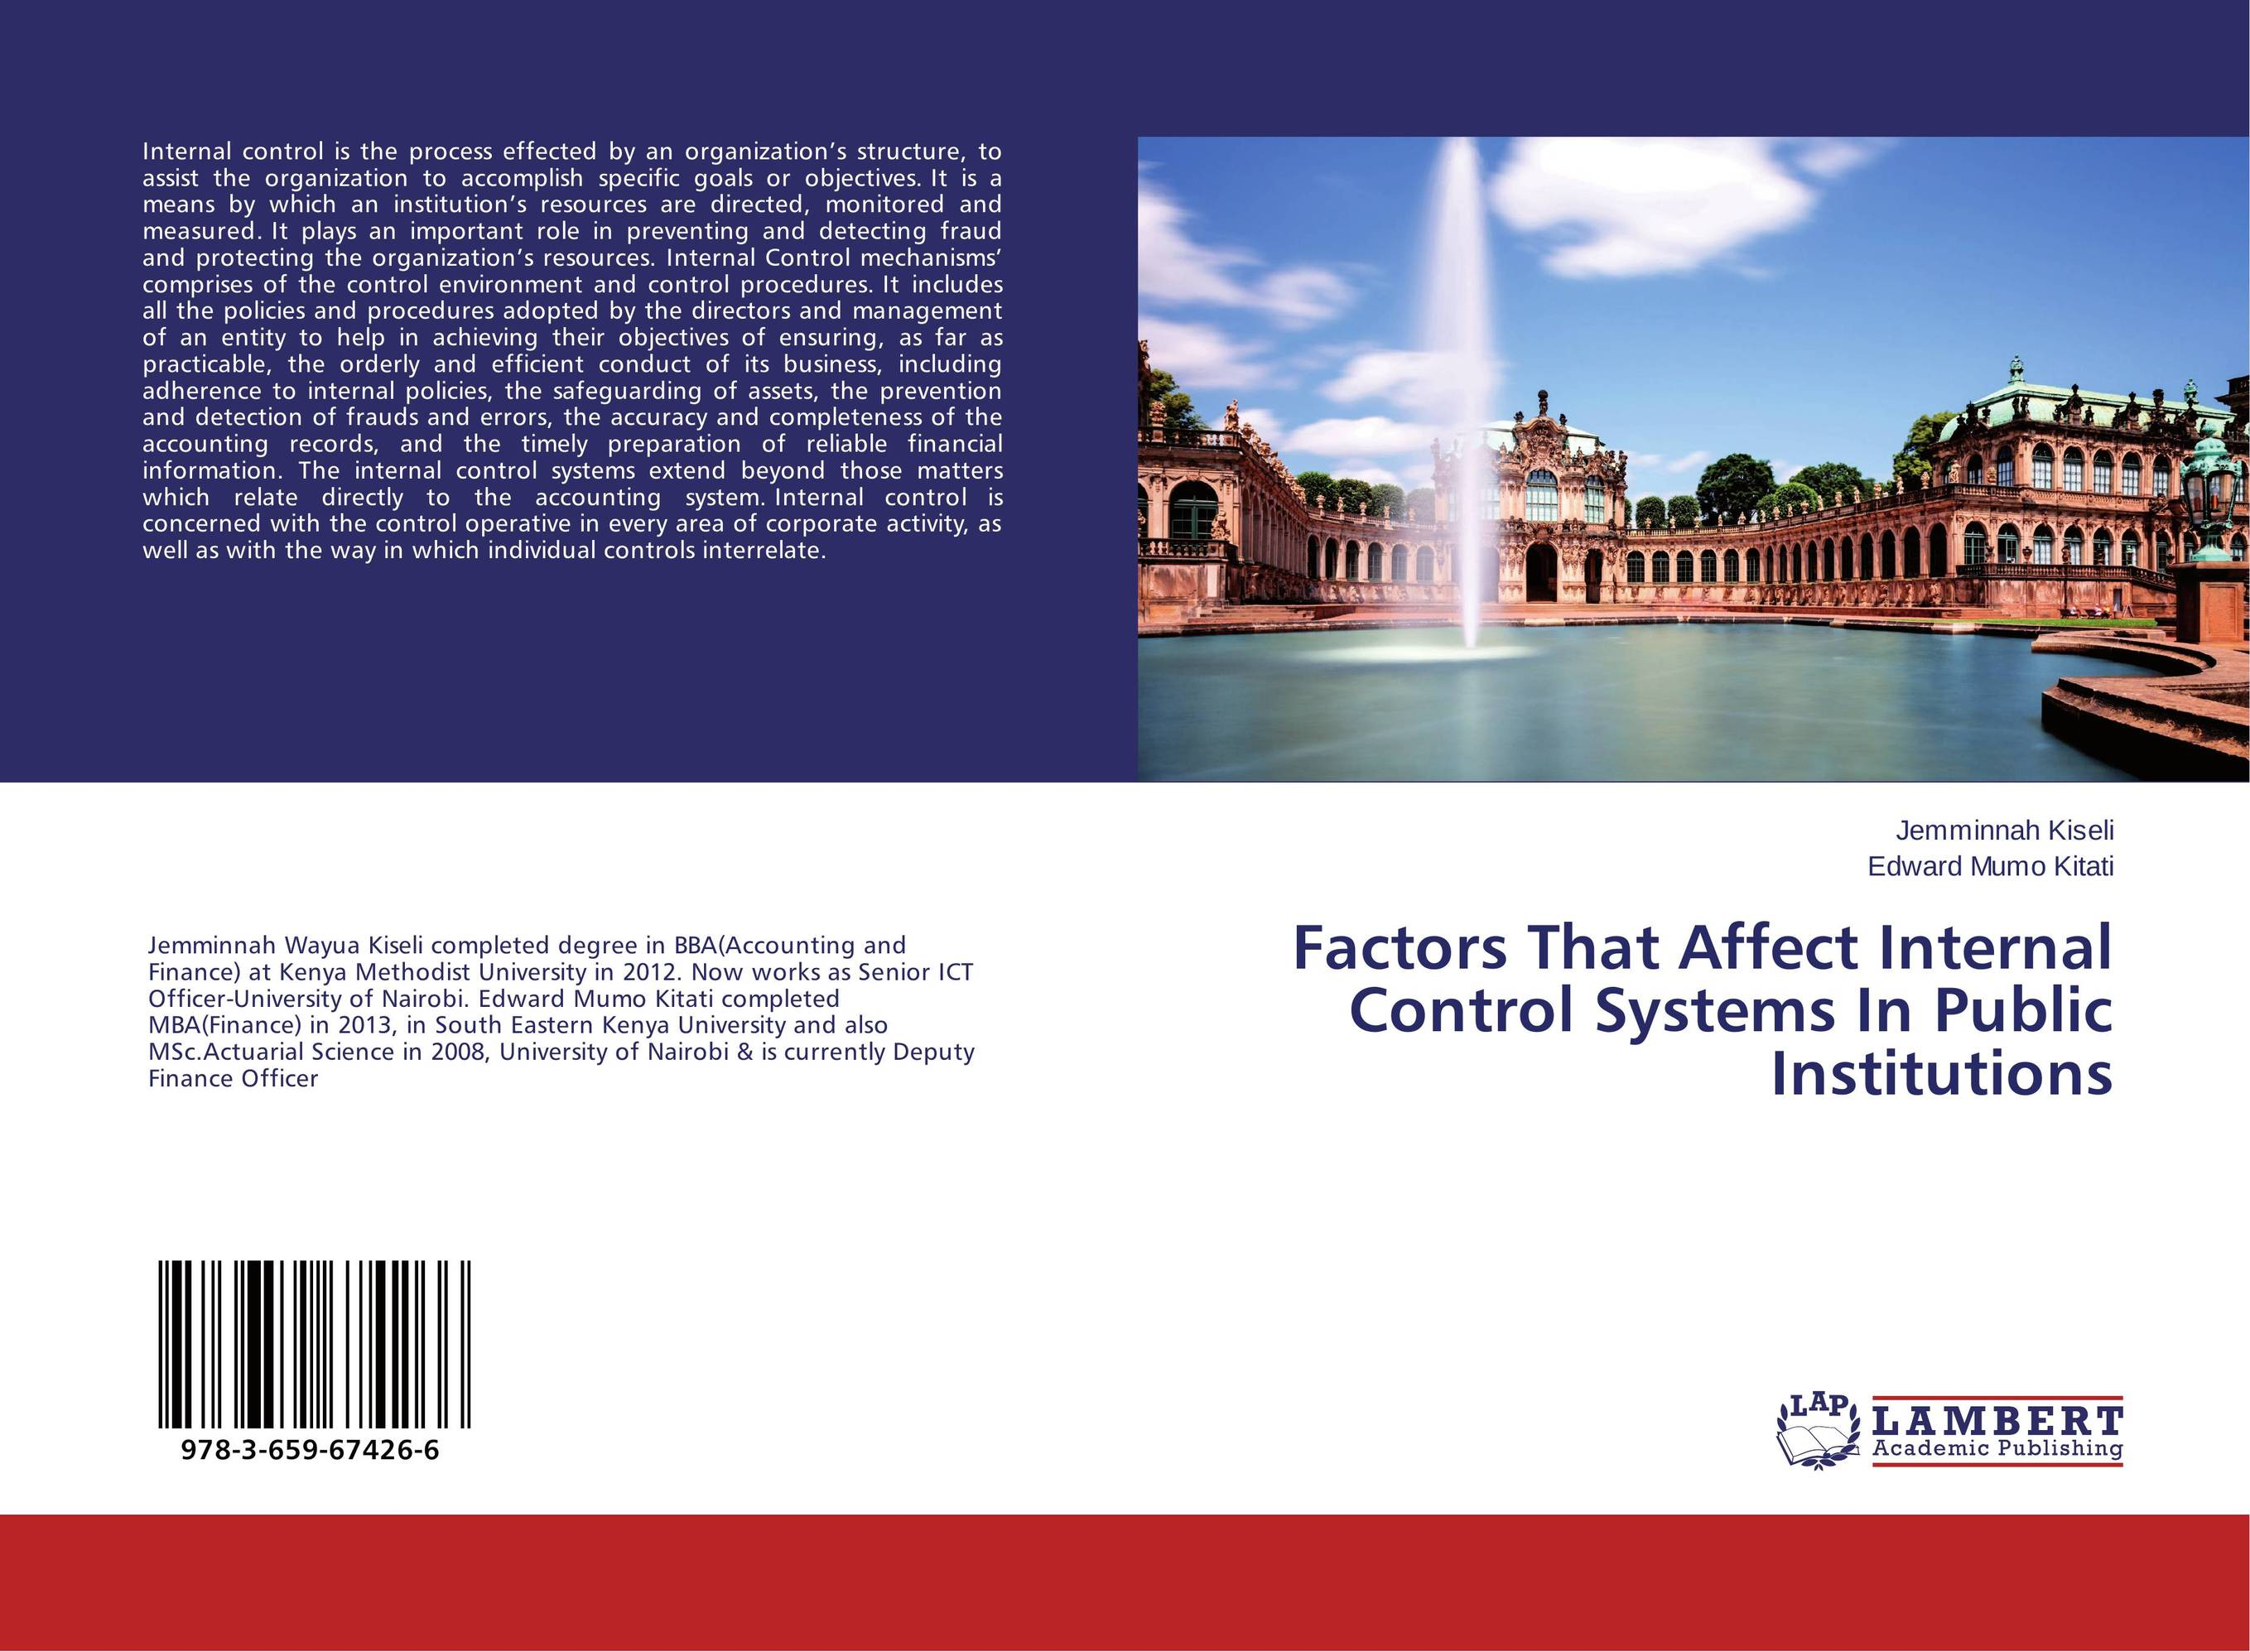 Factors That Affect Internal Control Systems In Public Institutions martin biegelman t executive roadmap to fraud prevention and internal control creating a culture of compliance